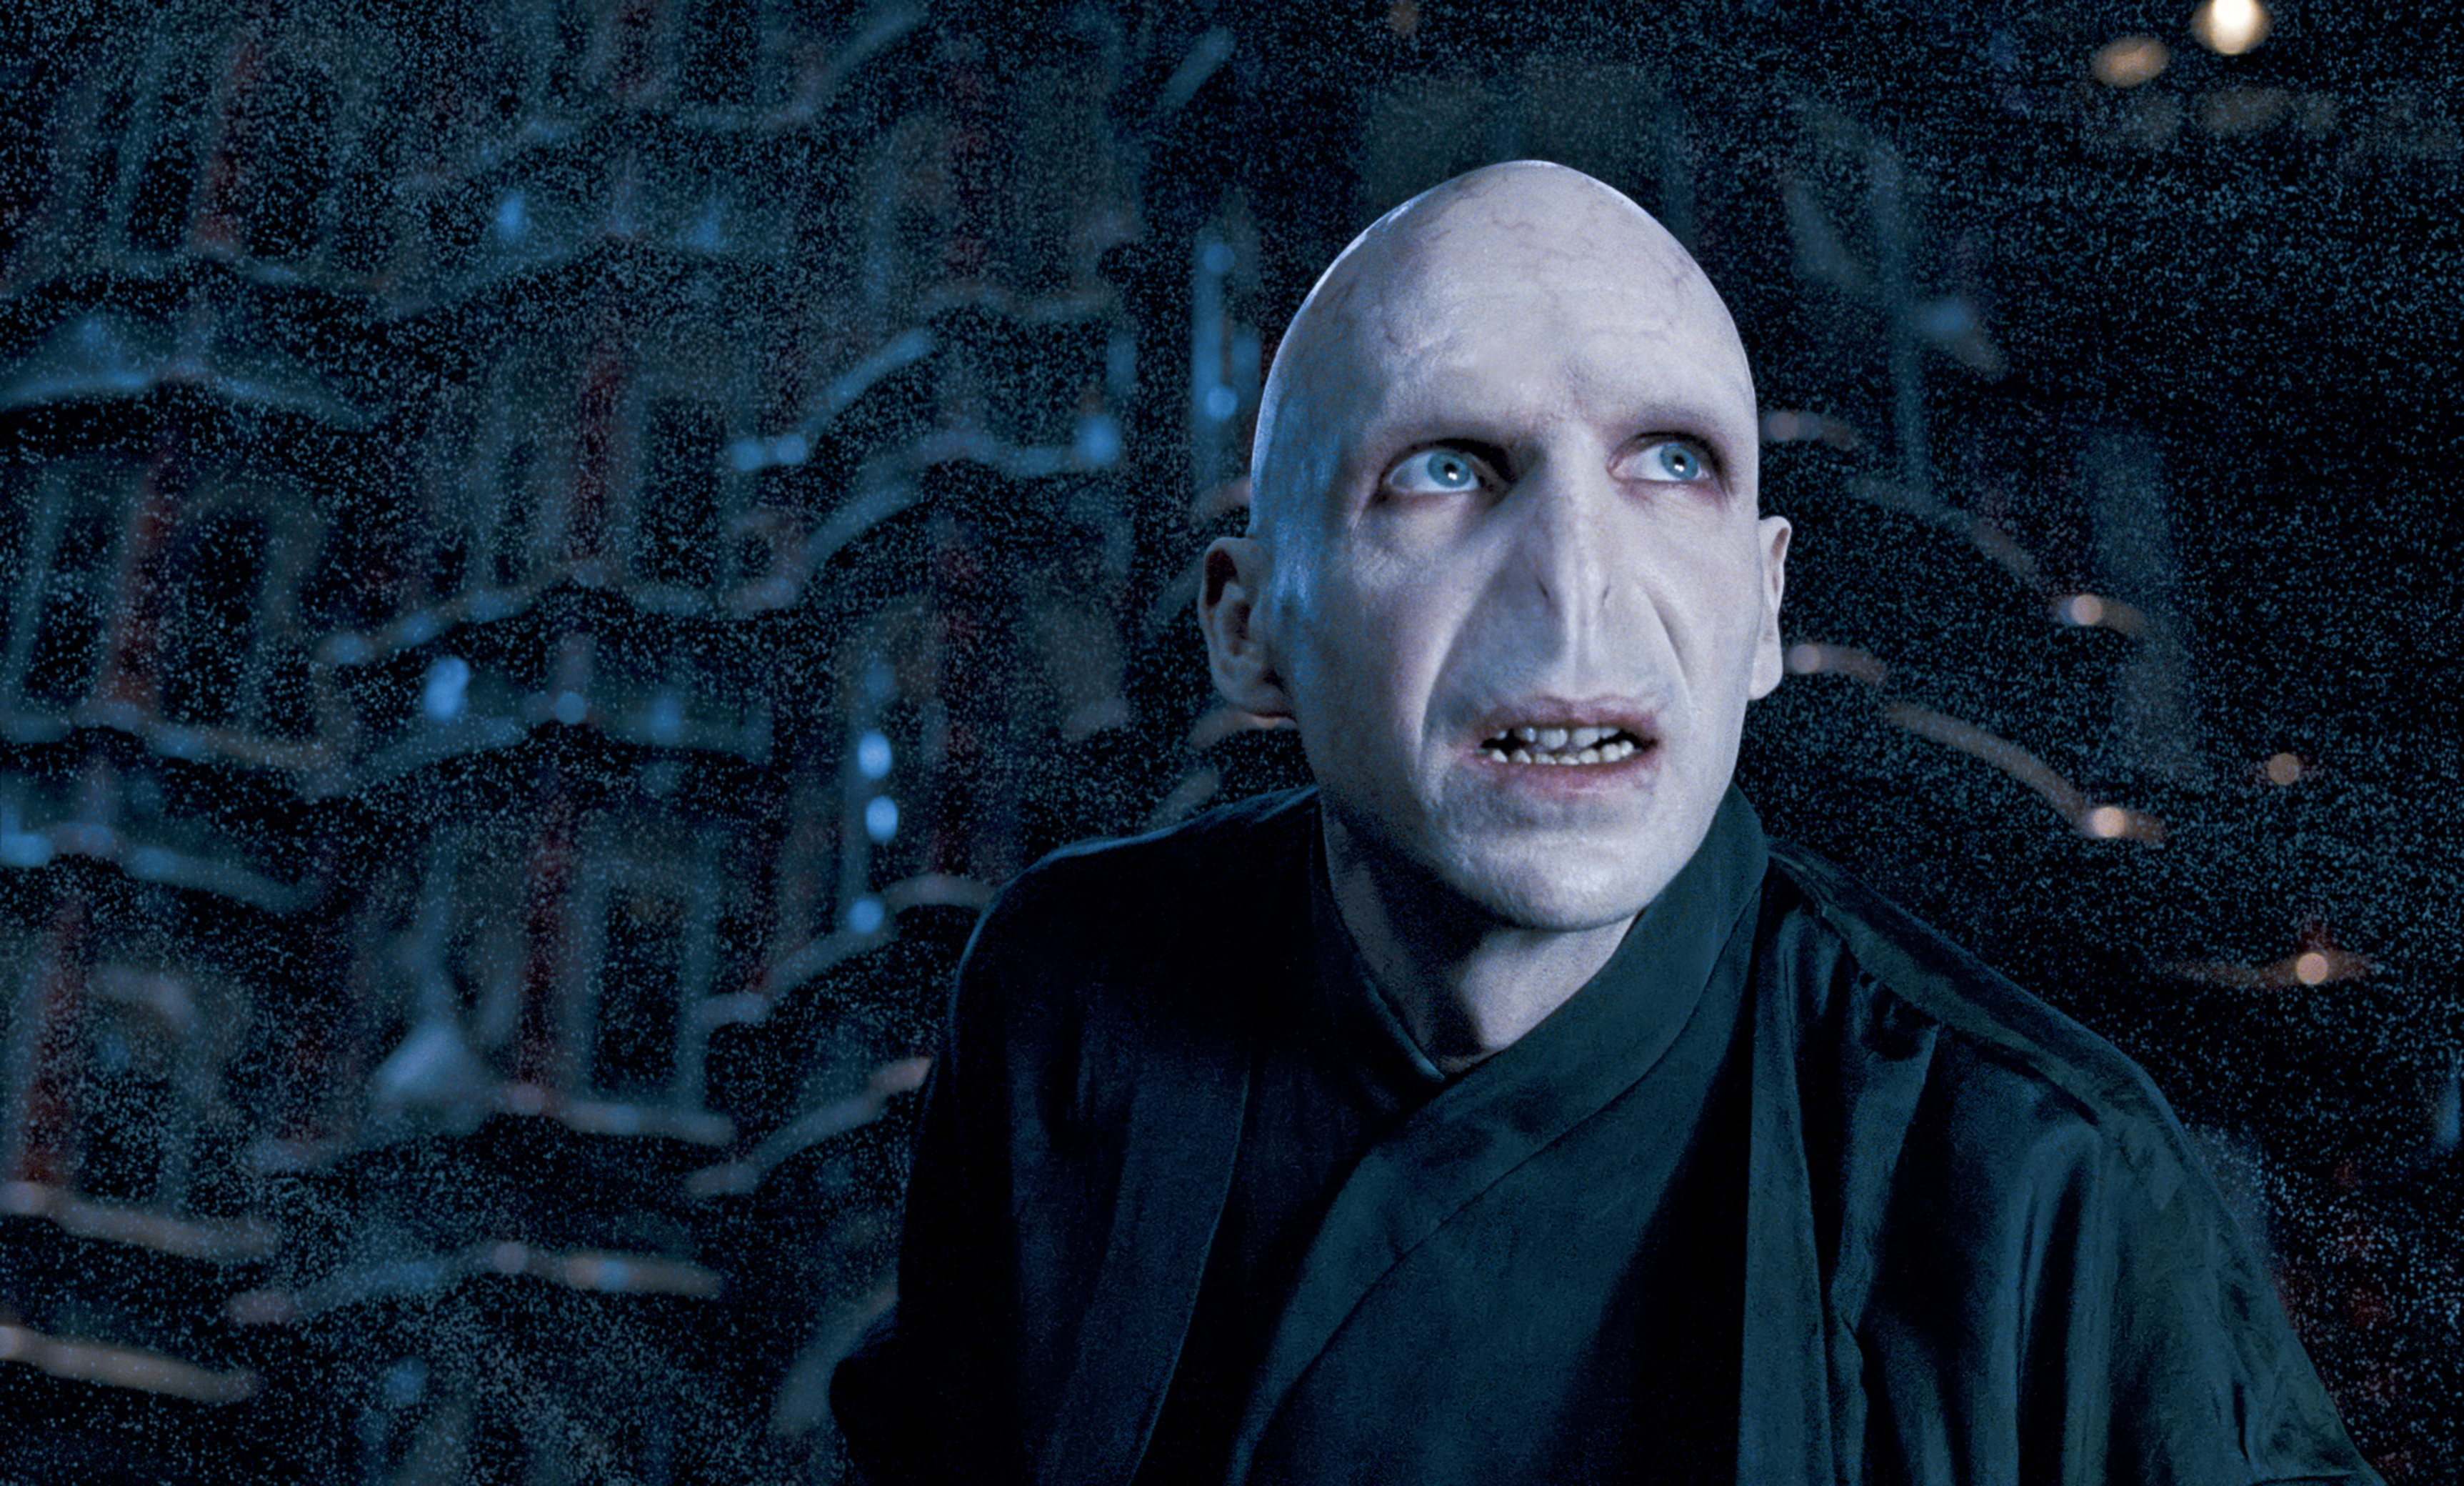 Voldemort in the Ministry of Magic from the Order of the Phonix